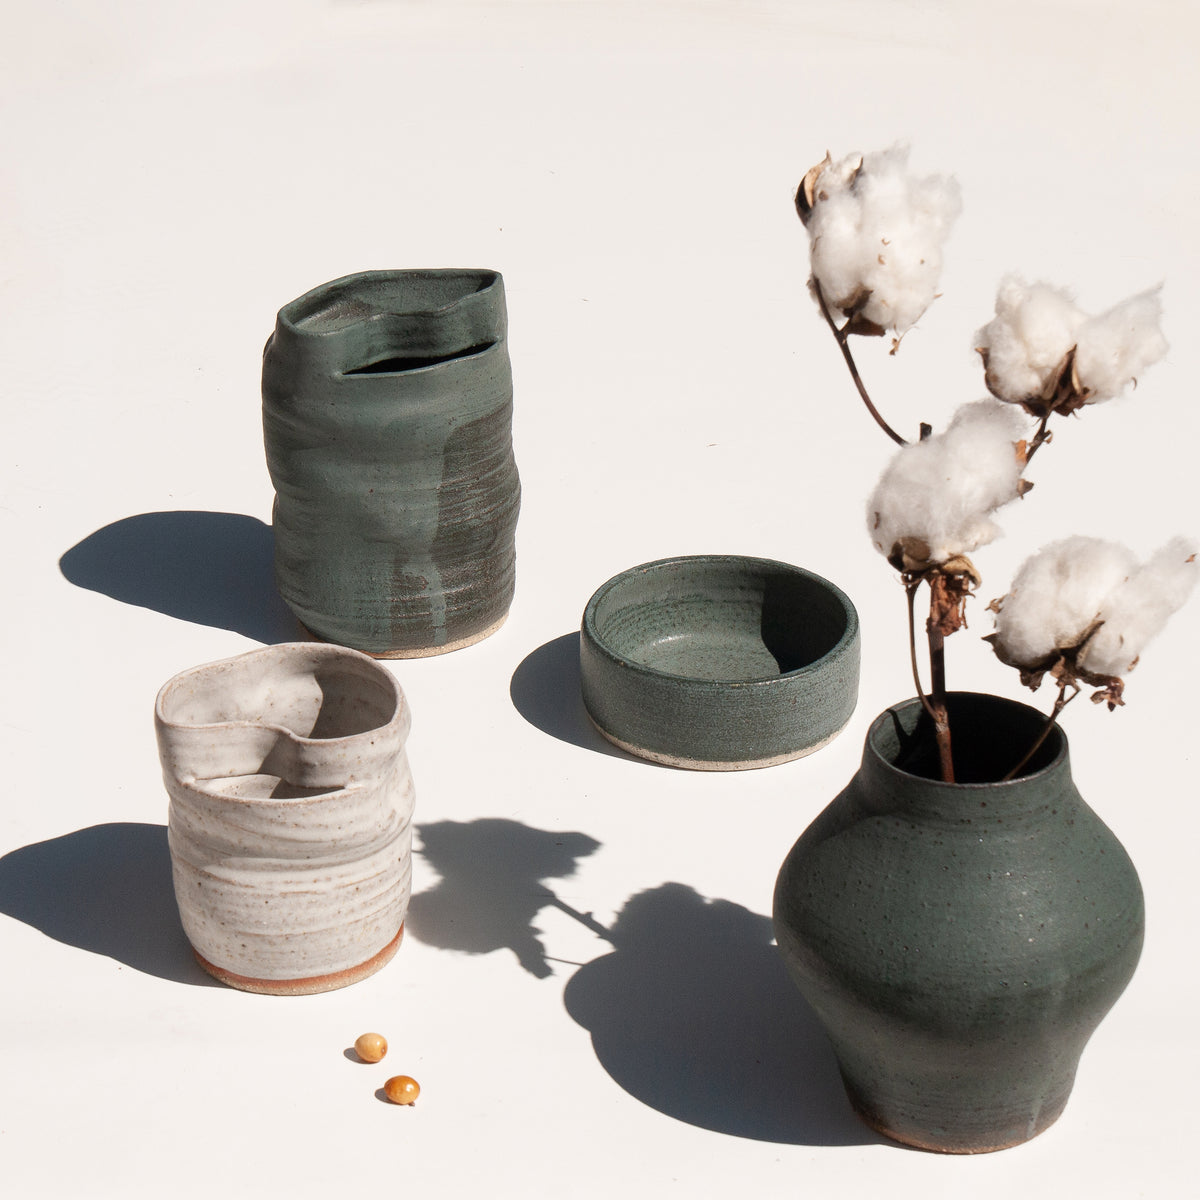 A selection of green and white hand-thrown vases with cotton by Asobimasu at Maker's Mrkt Makers Market Melbourne